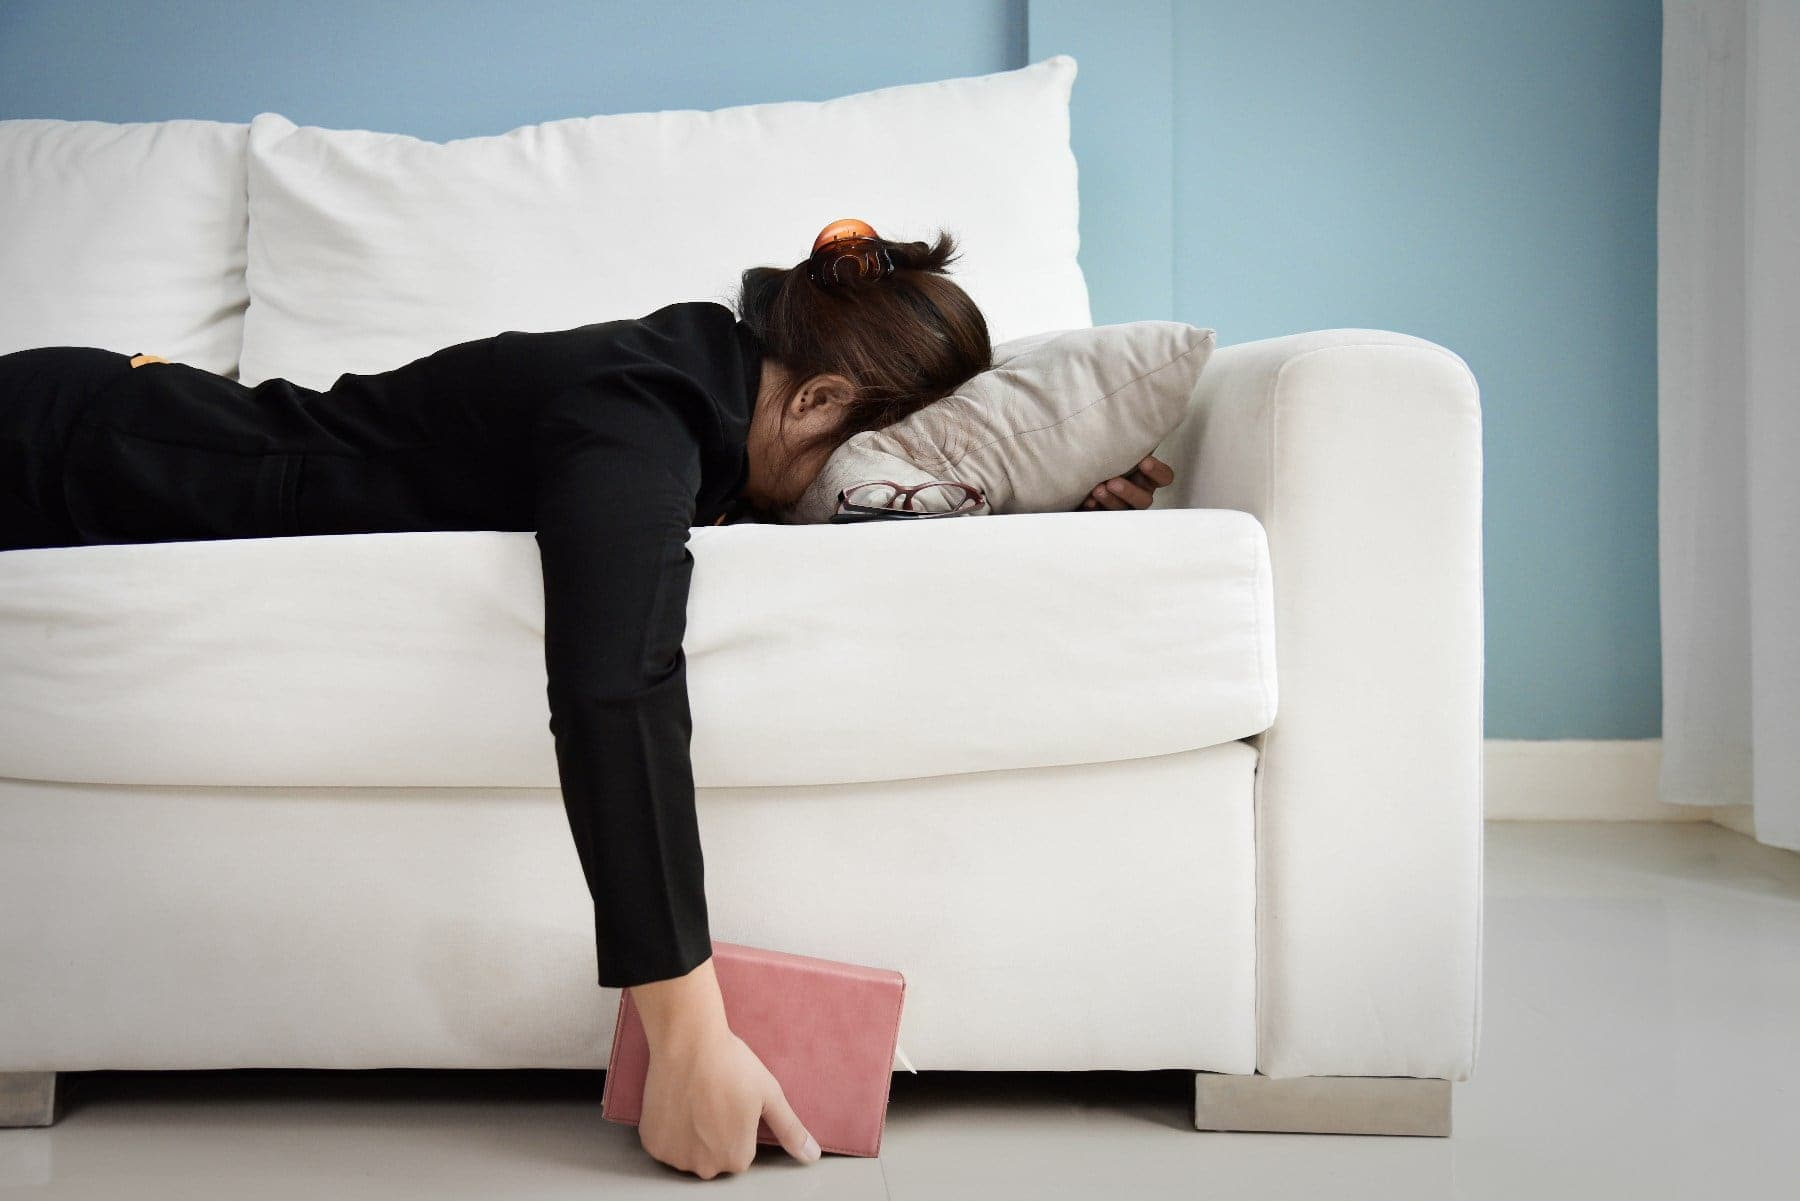 Exhausted, Tired Asian Business woman in black shirt holding notebook and sleeping on white sofa with blue wall. Stress from overtime working concept.